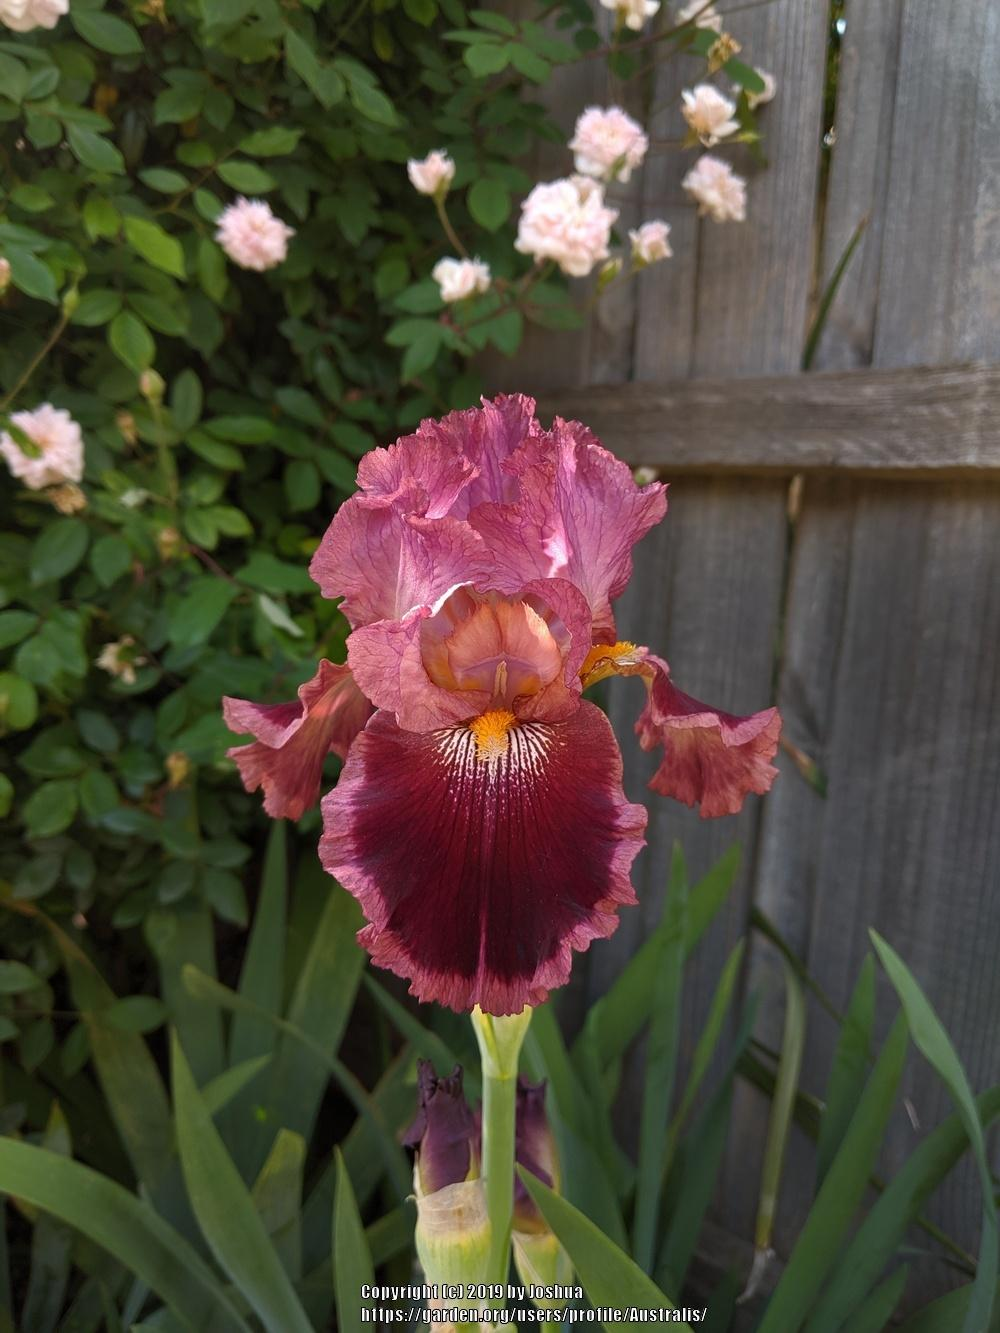 Photo of Tall Bearded Iris (Iris 'Scarlet Embers') uploaded by Australis